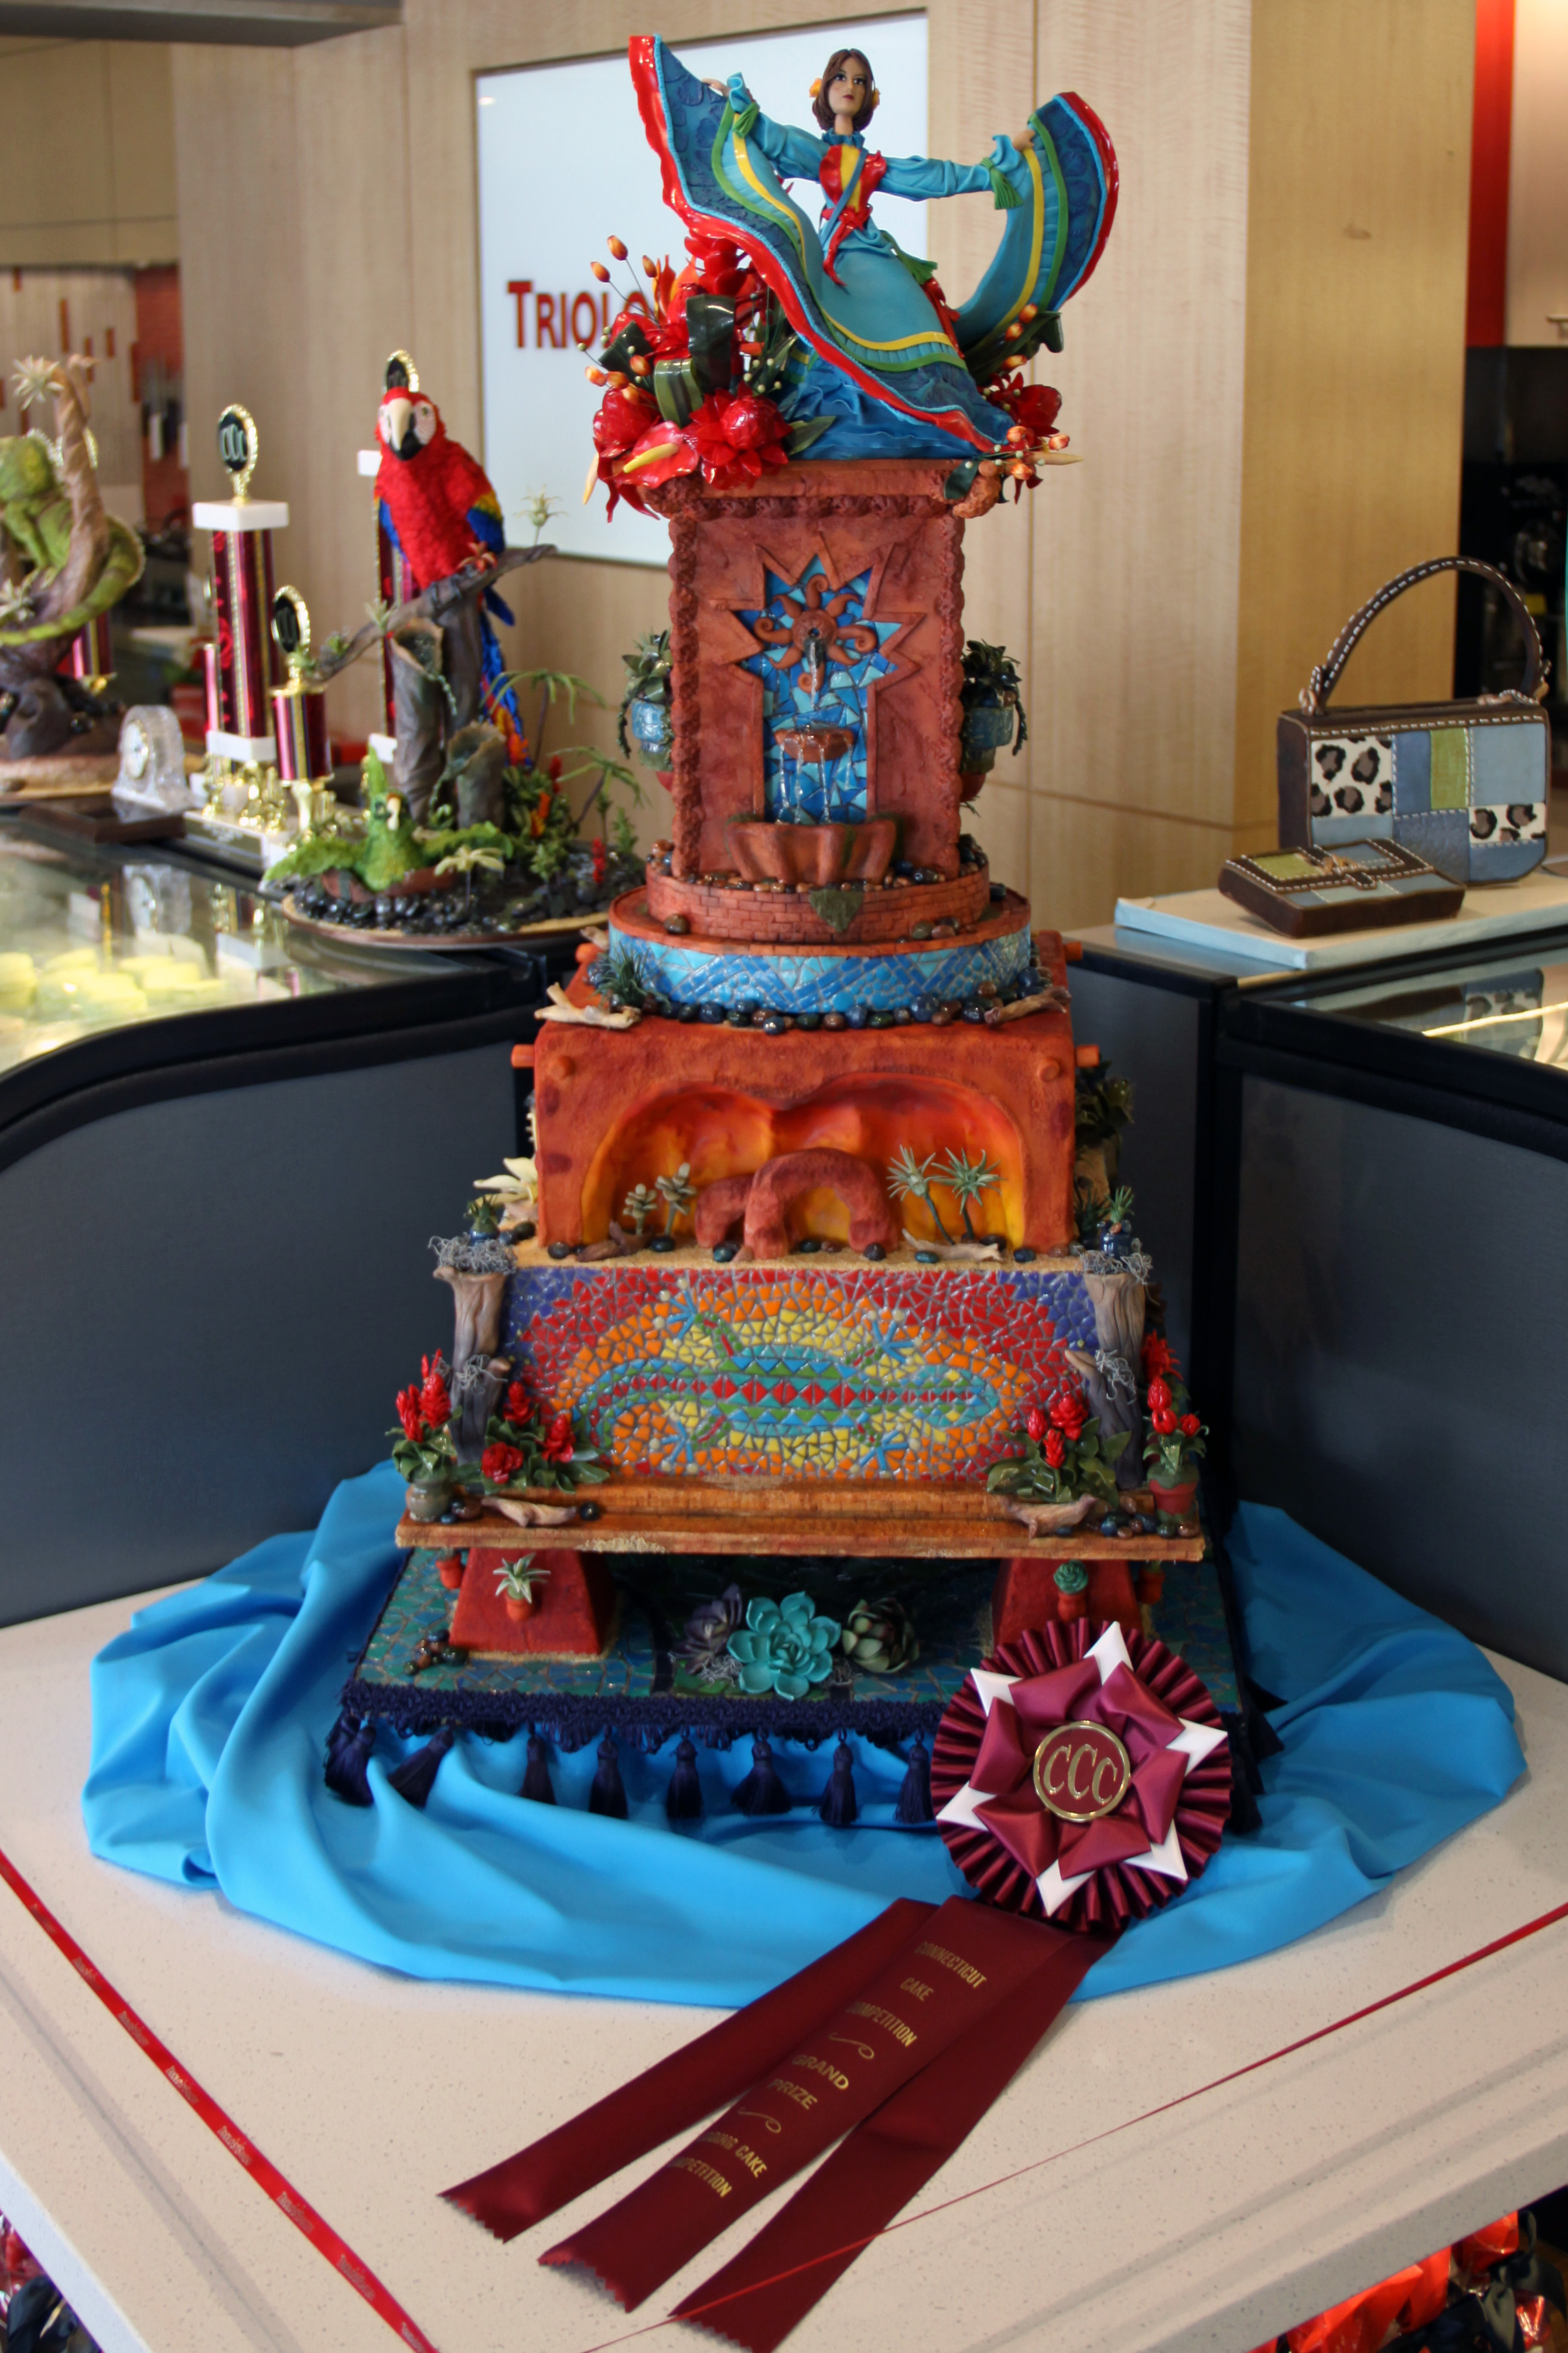 Triolo's Bakery Wins Top Honors at Connecticut Cake ...